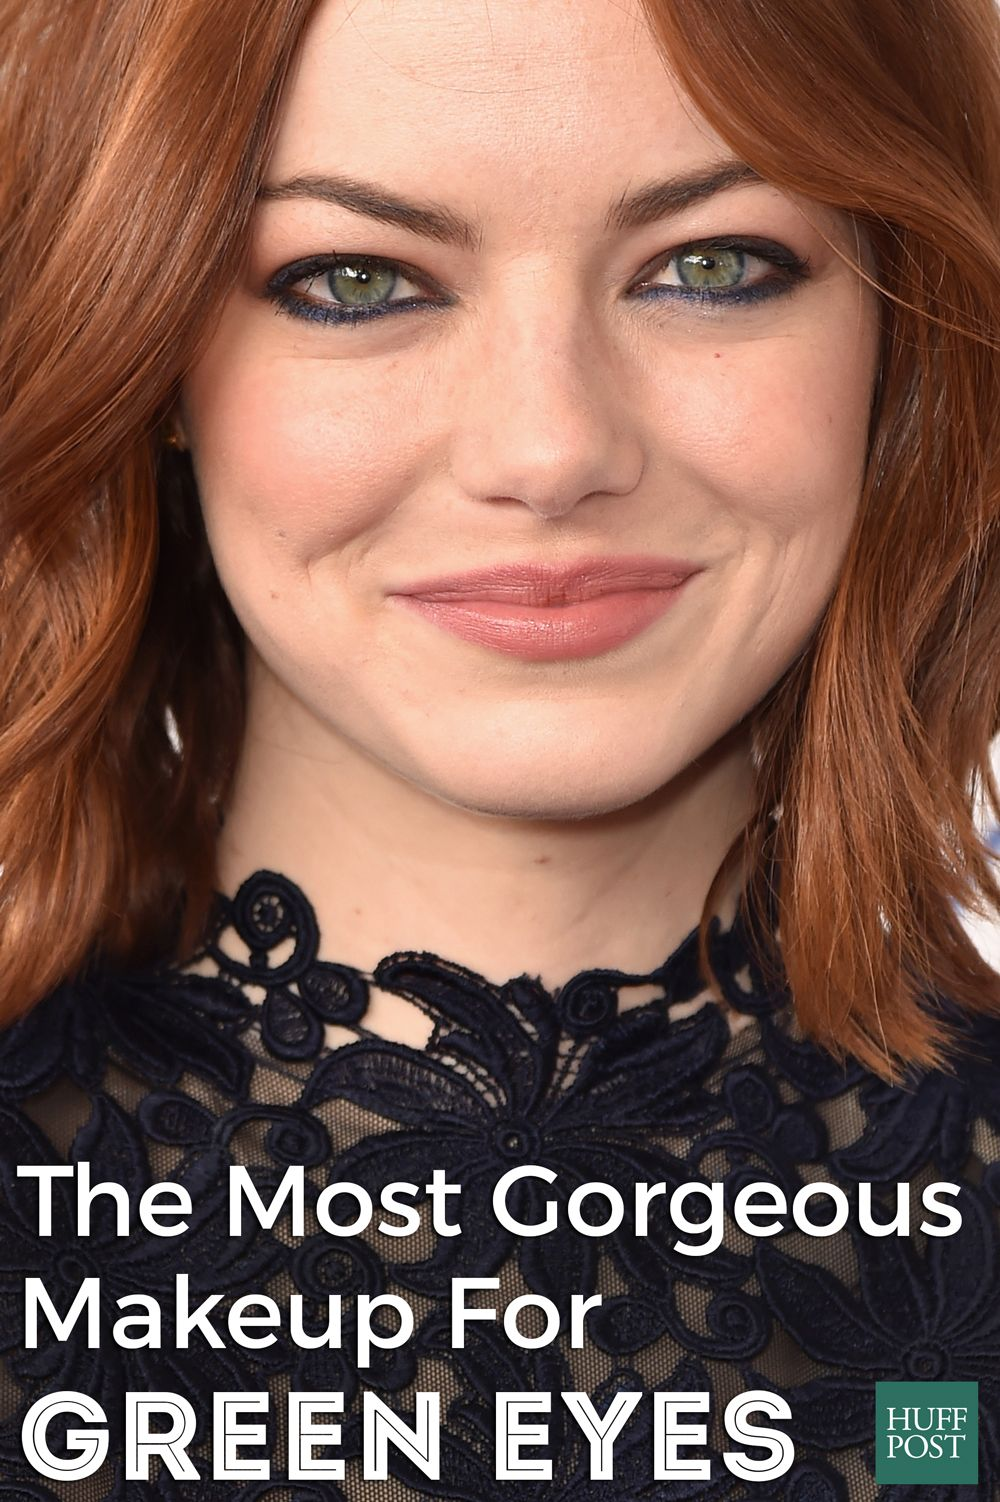 The Most Gorgeous Makeup For Green Eyes Makeup For Green Eyes Makeup For Hazel Eyes Red Hair Green Eyes